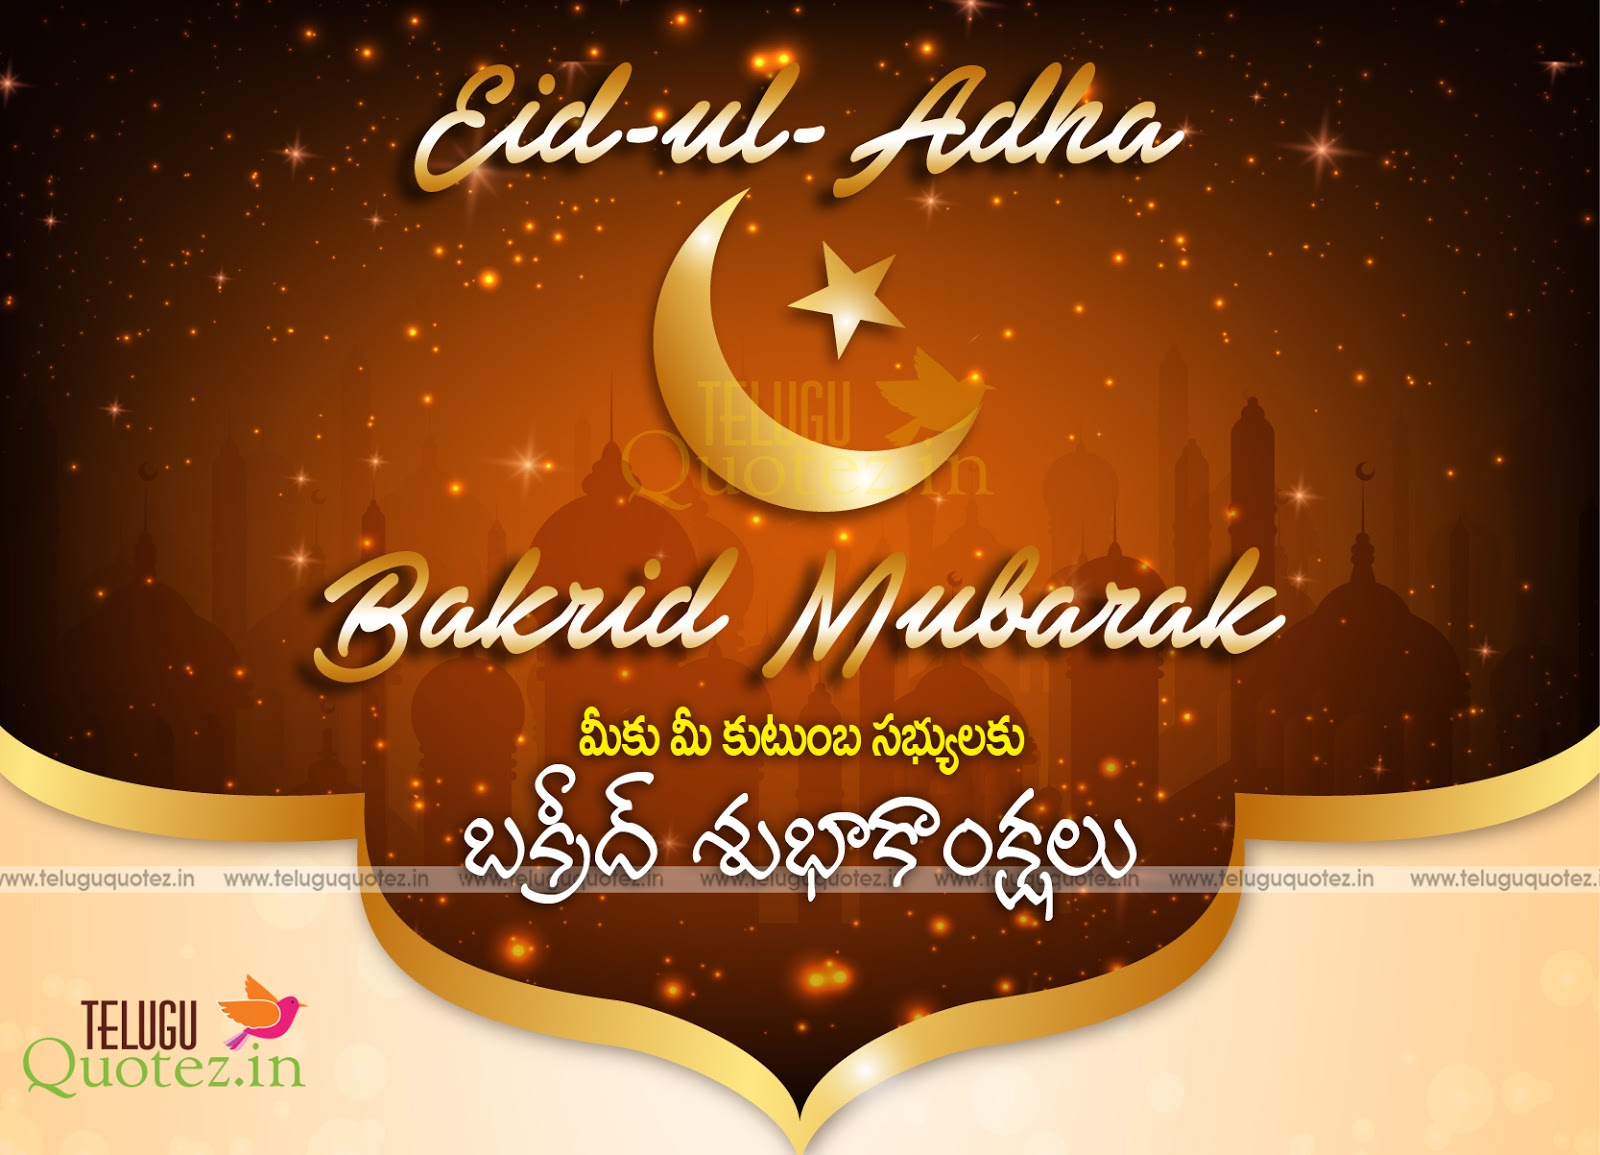 Happy eid ul adha bakrid mubarak telugu quotes teluguquotez happy bakrid telugu greetings quotes wishes images pictures kristyandbryce Choice Image